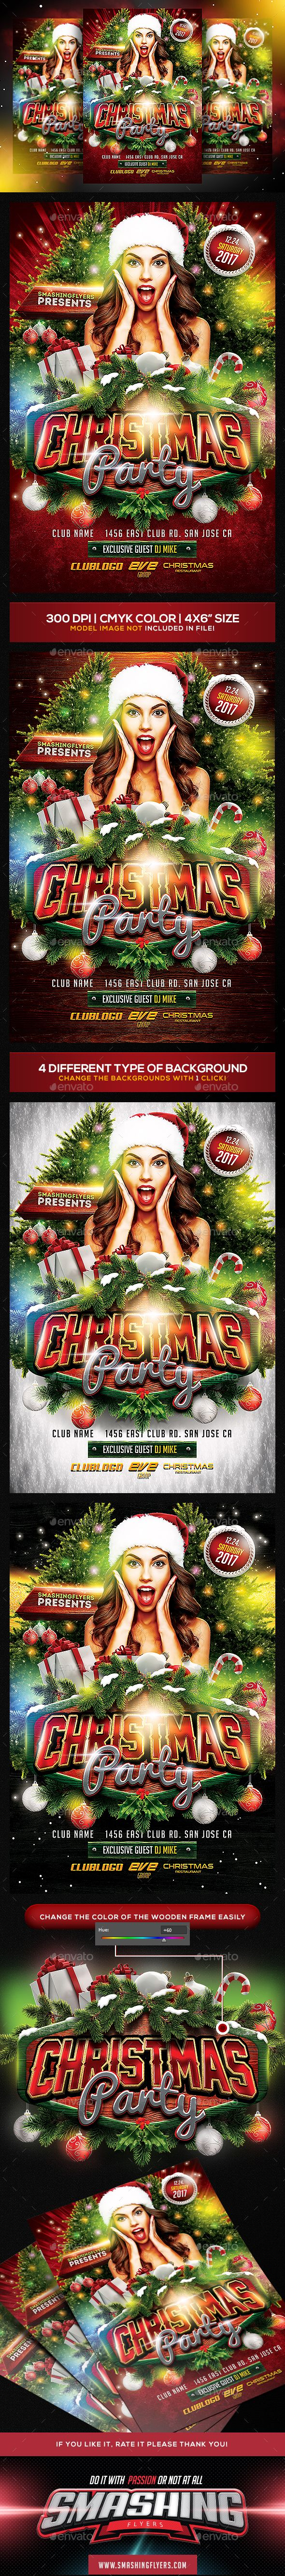 #Christmas Party #Flyer Template - Clubs & Parties Events